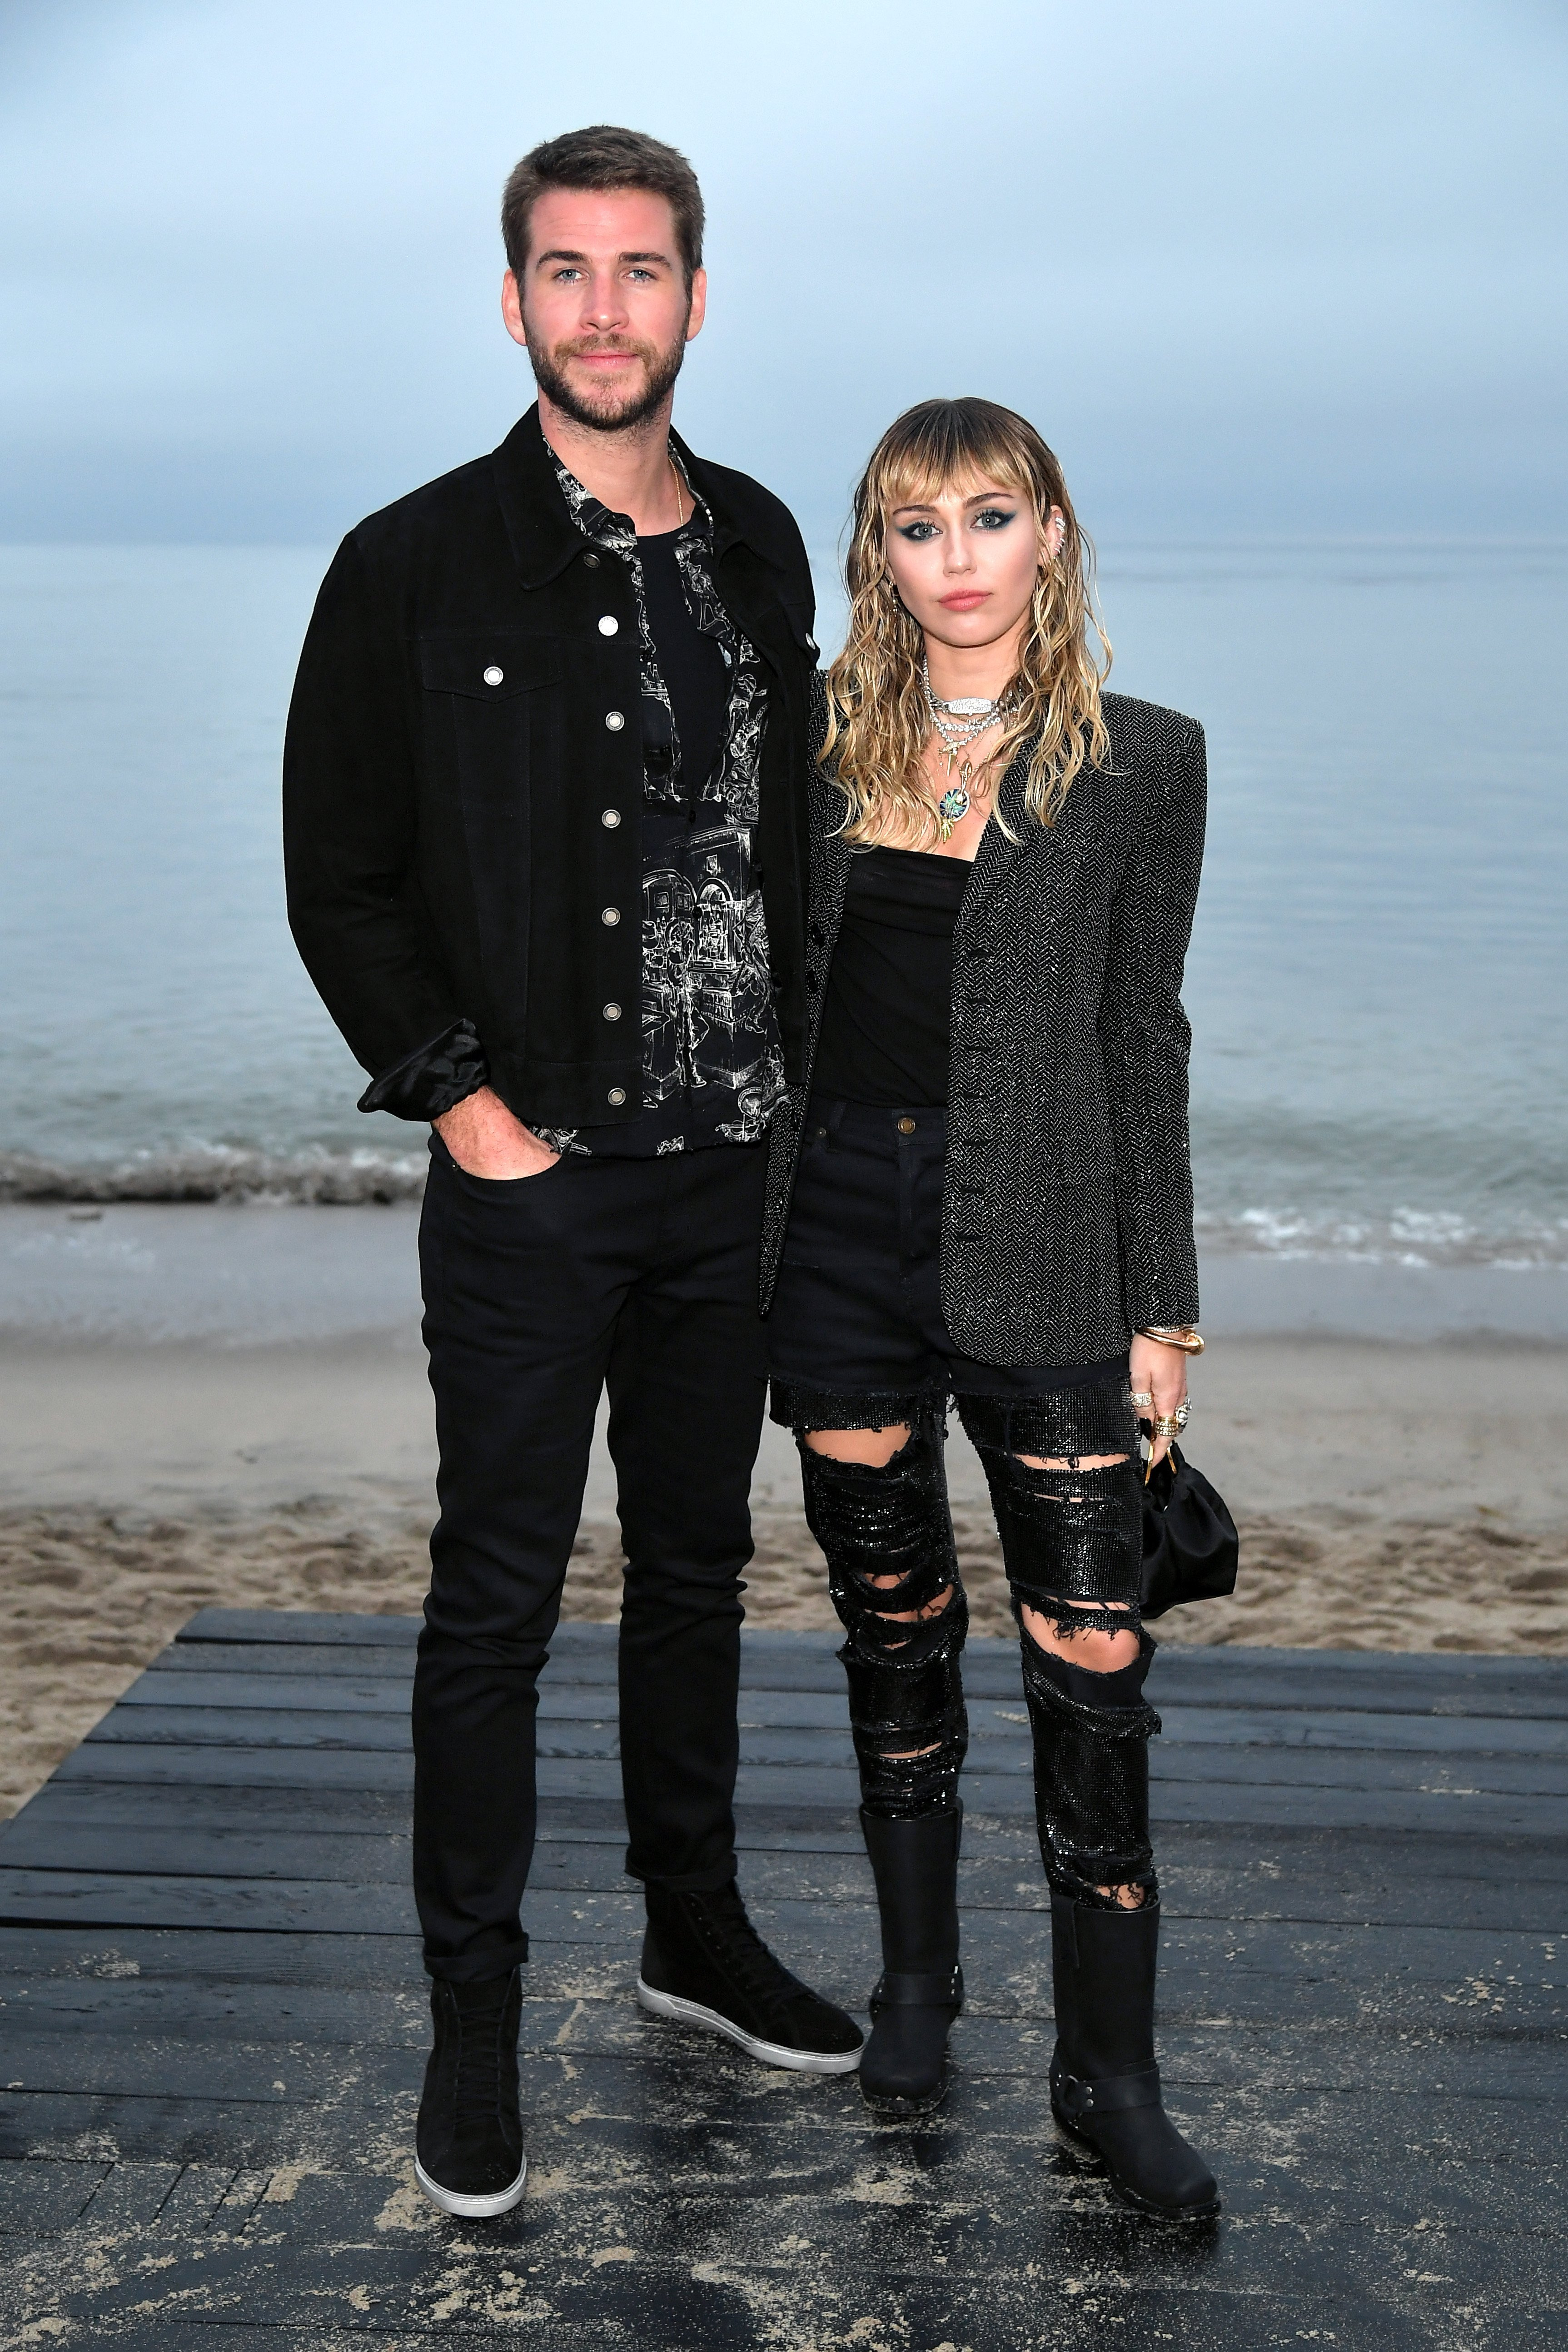 Liam Hemsworth y Miley Cyrus en el Saint Laurent Mens Spring Summer 20 Show, el 06 de junio de 2019 en Paradise Cove Malibu, California. | Imagen: Getty Images